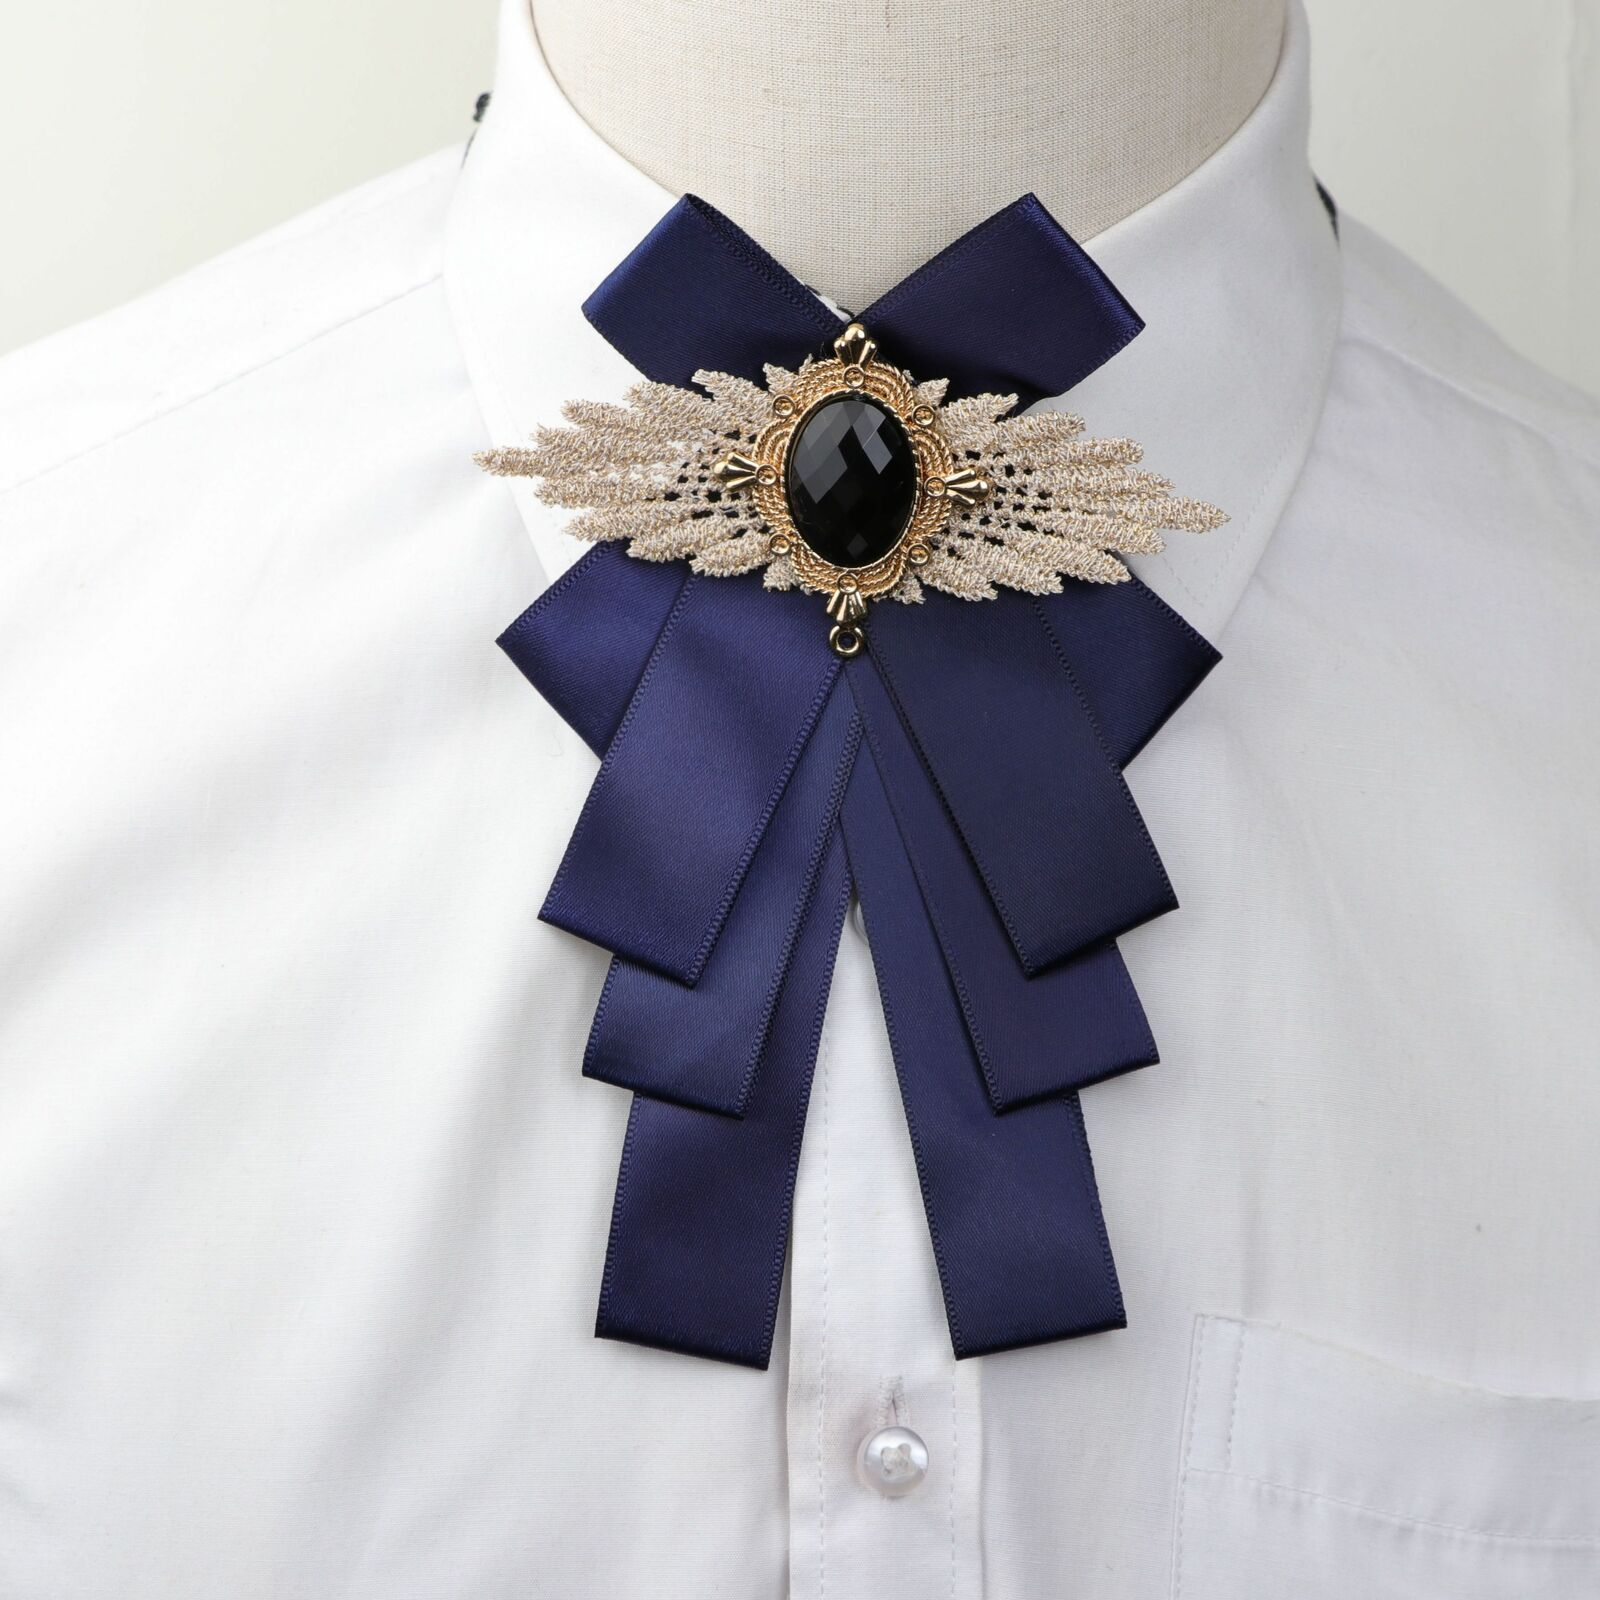 Ribbon Woman Big Bowtie Cravat Bowknot Pin Lapel Solid Color Butterfly Polyester